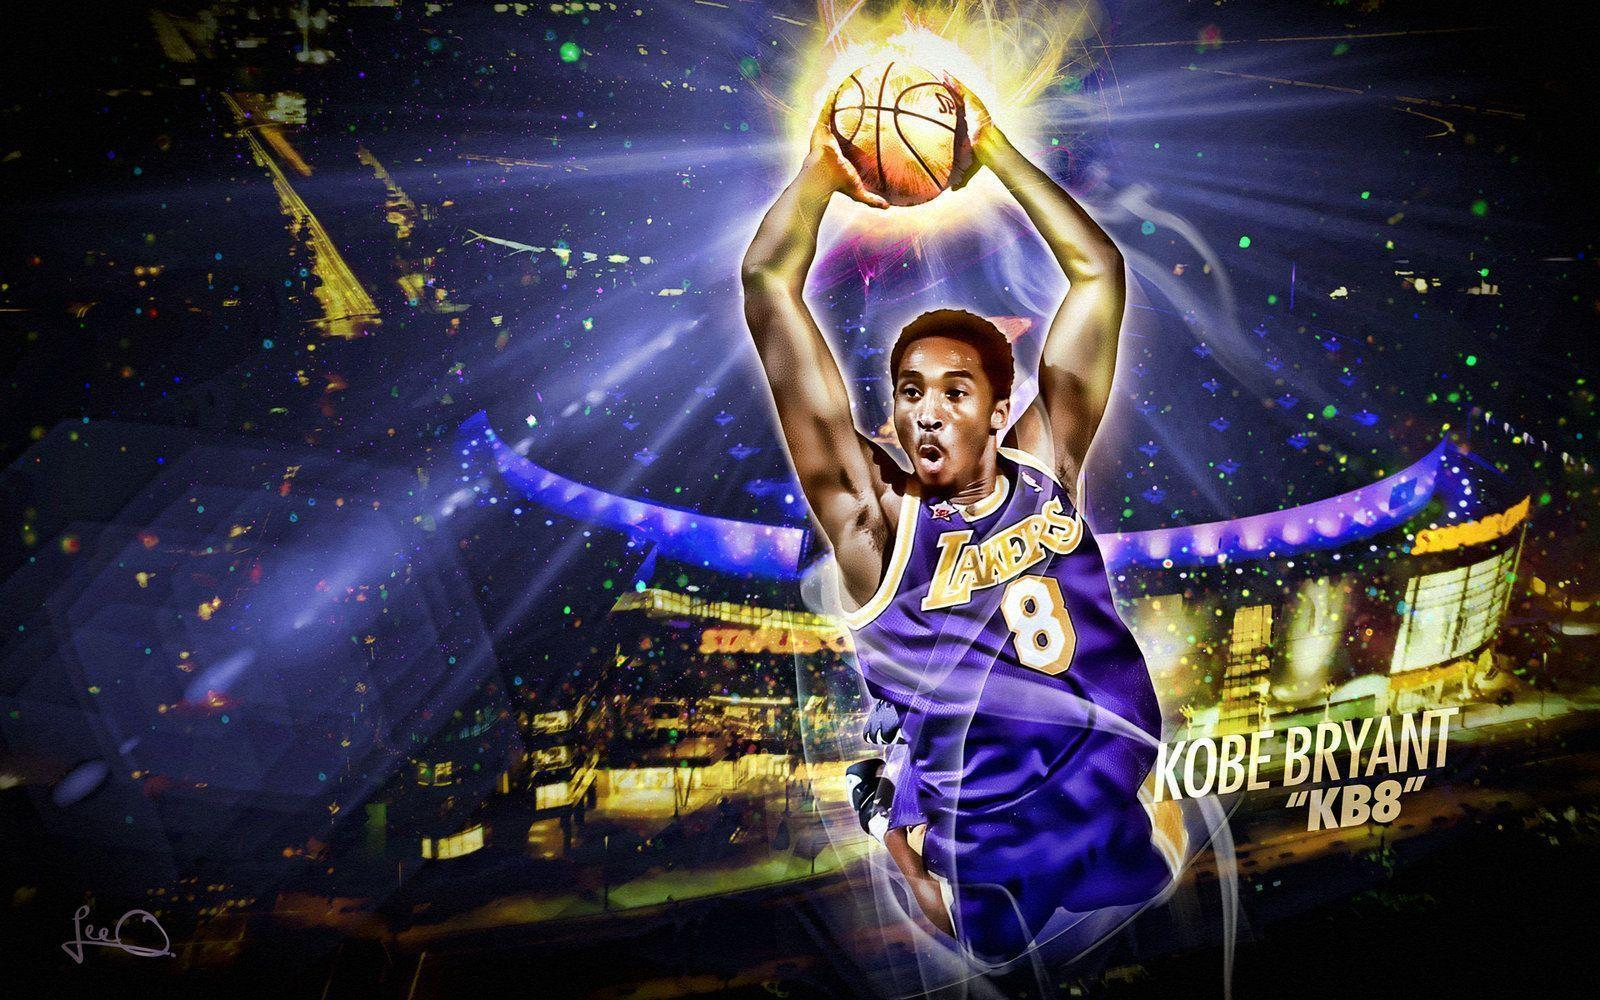 kobe bryant wallpaper 2016 - photo #6